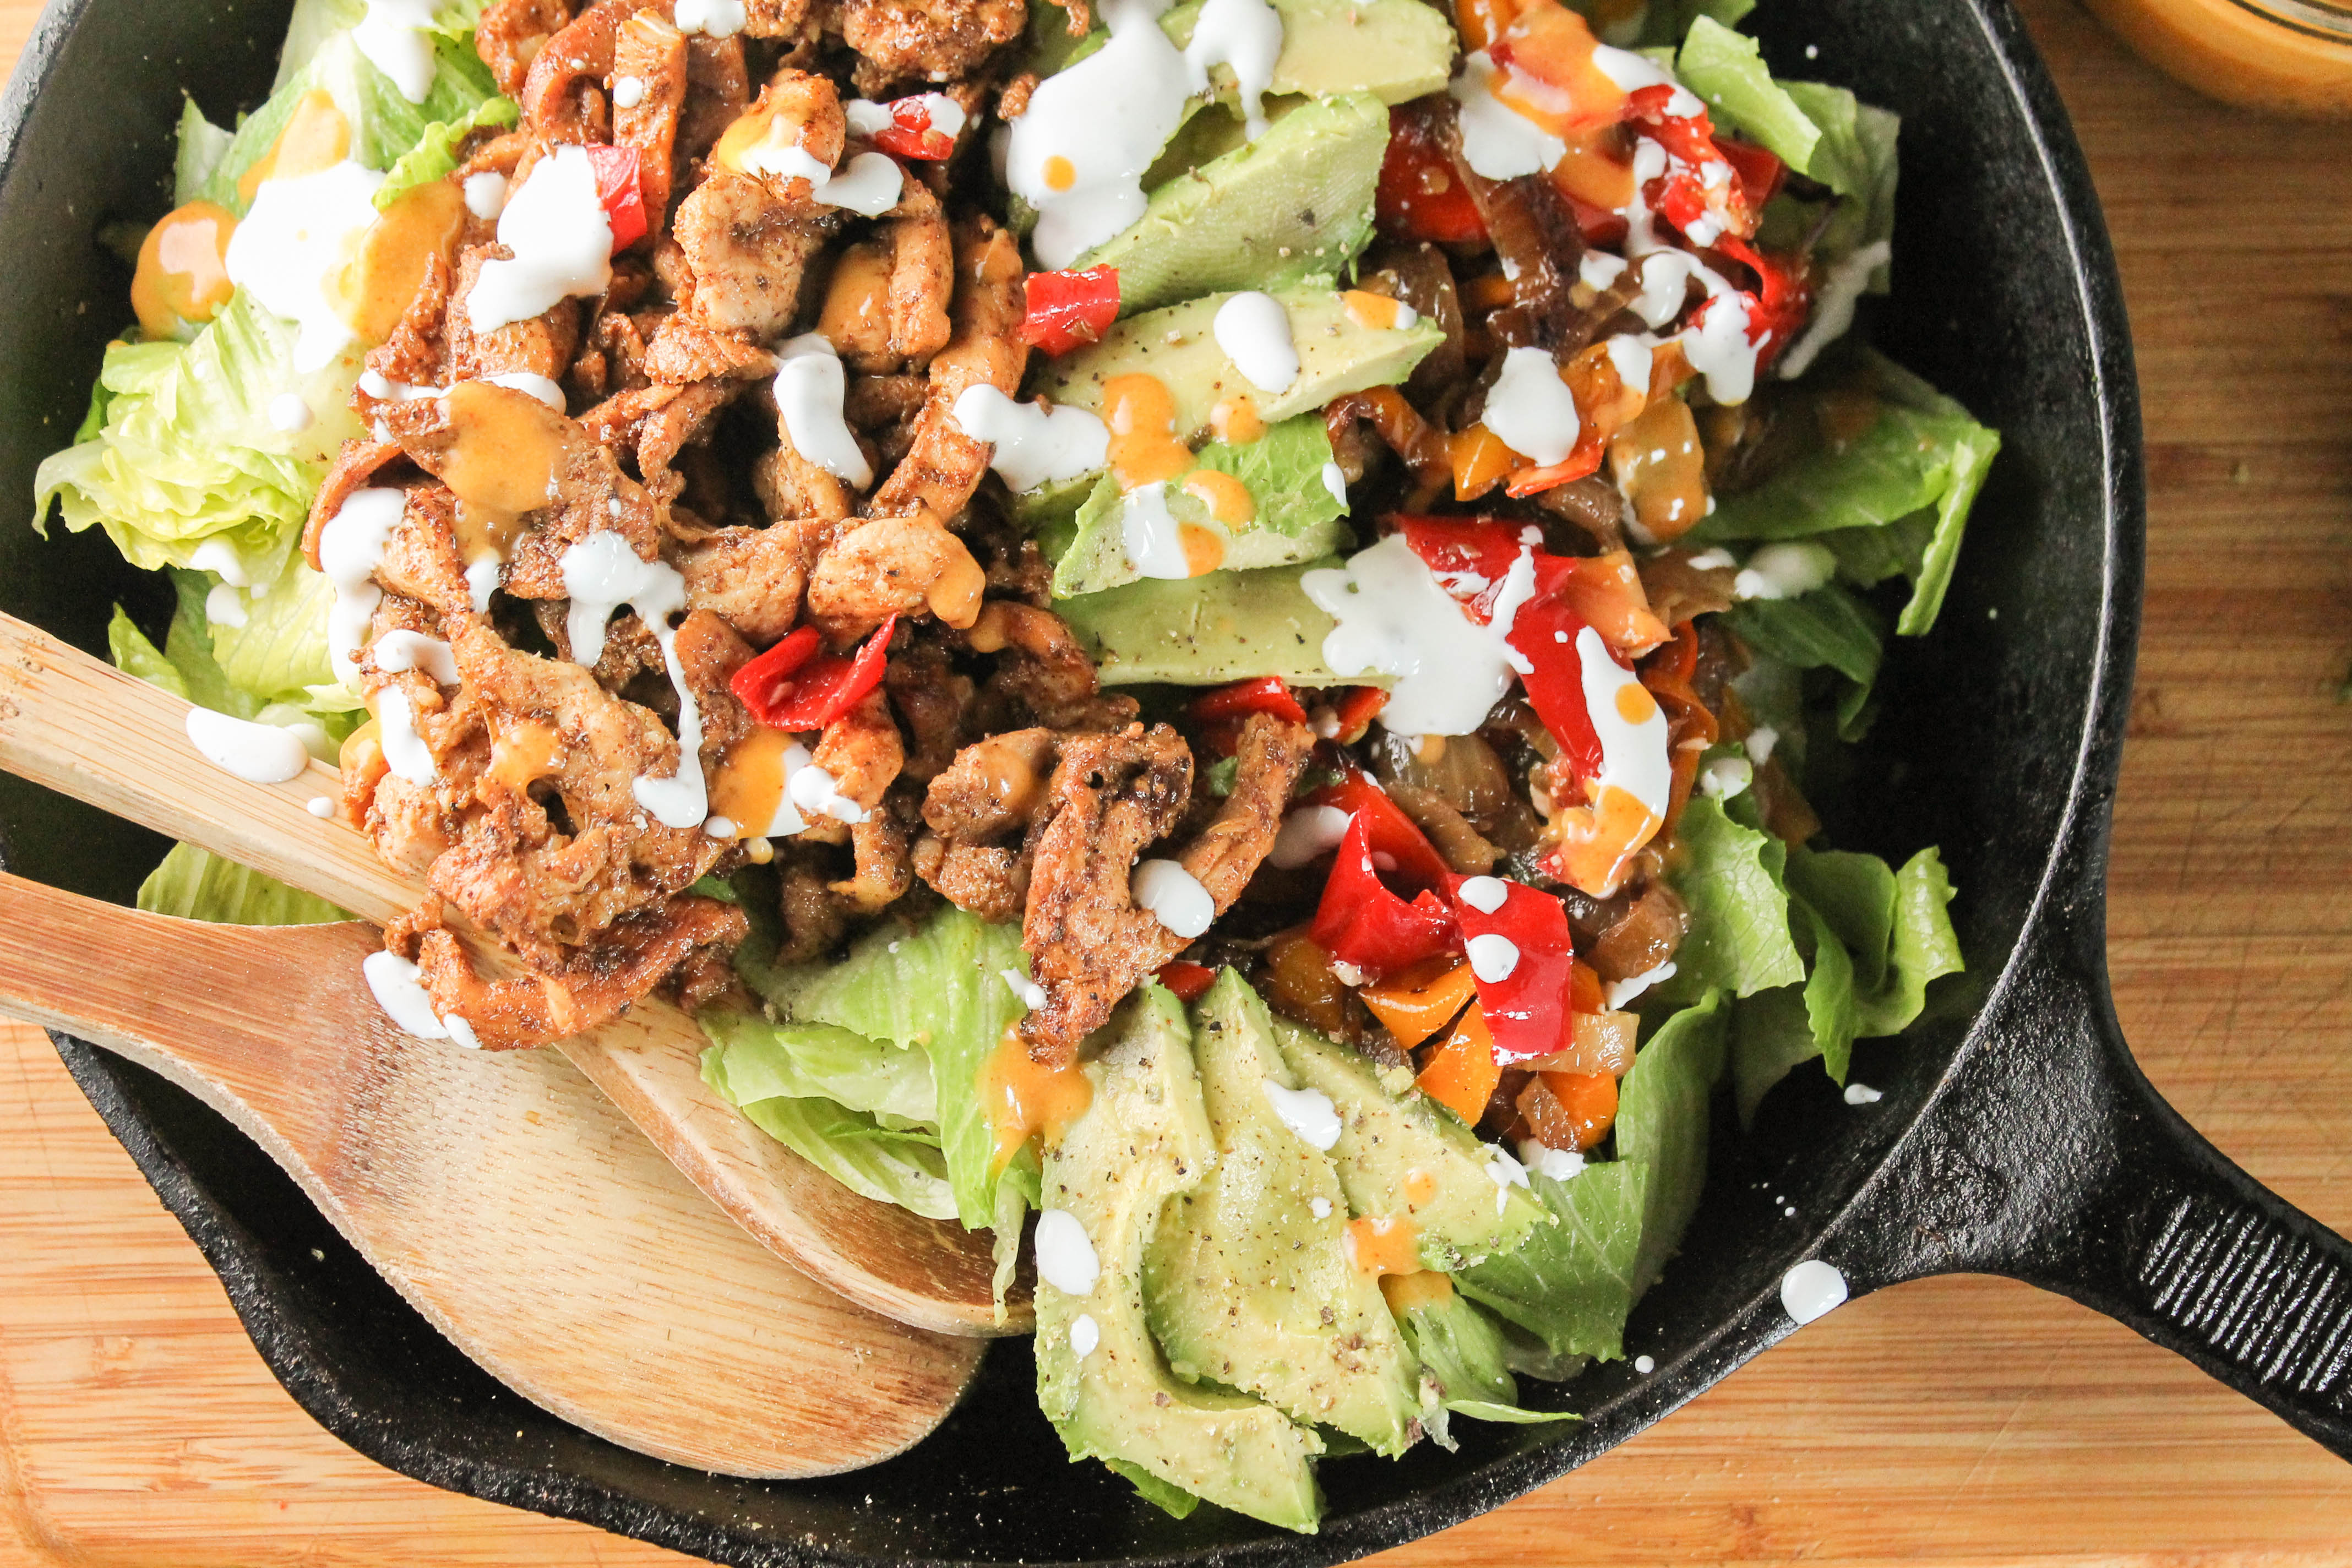 paleo chicken fajitas with charred onions and peppers topped with a dairy free creamy drizzle in a cast iron pan with wooden serving spoons